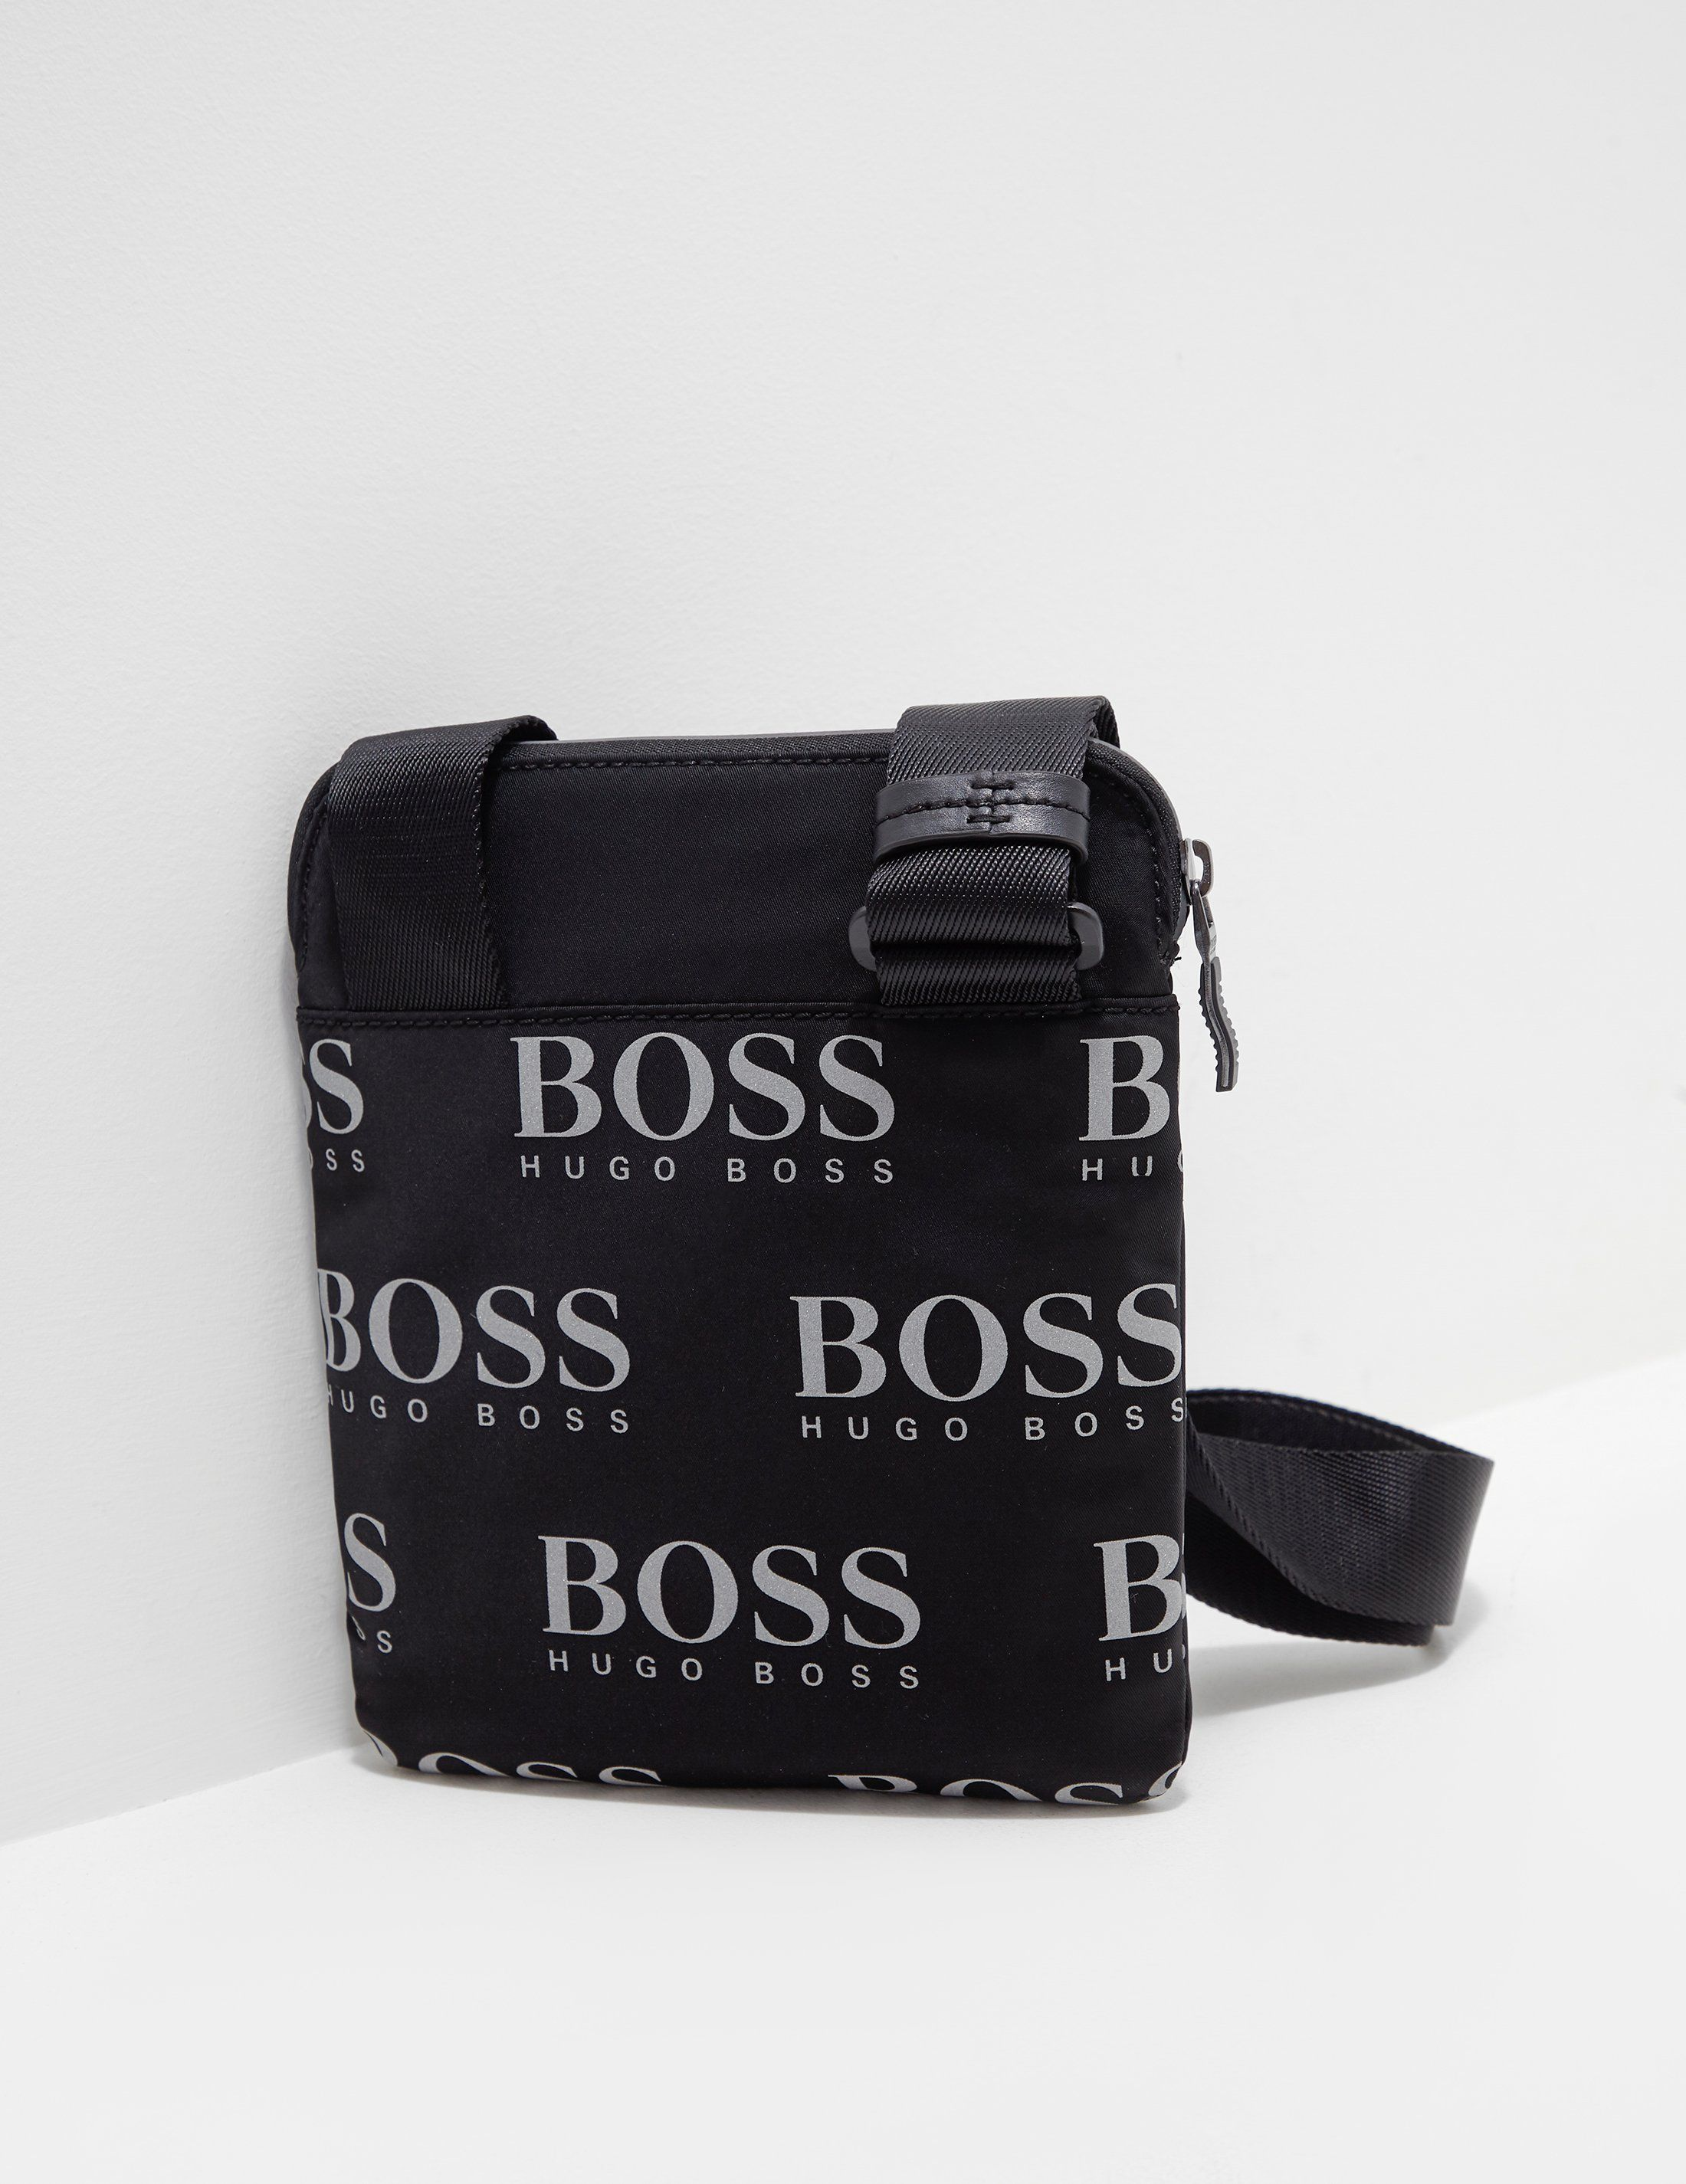 BOSS Iconic Print Small Item Bag